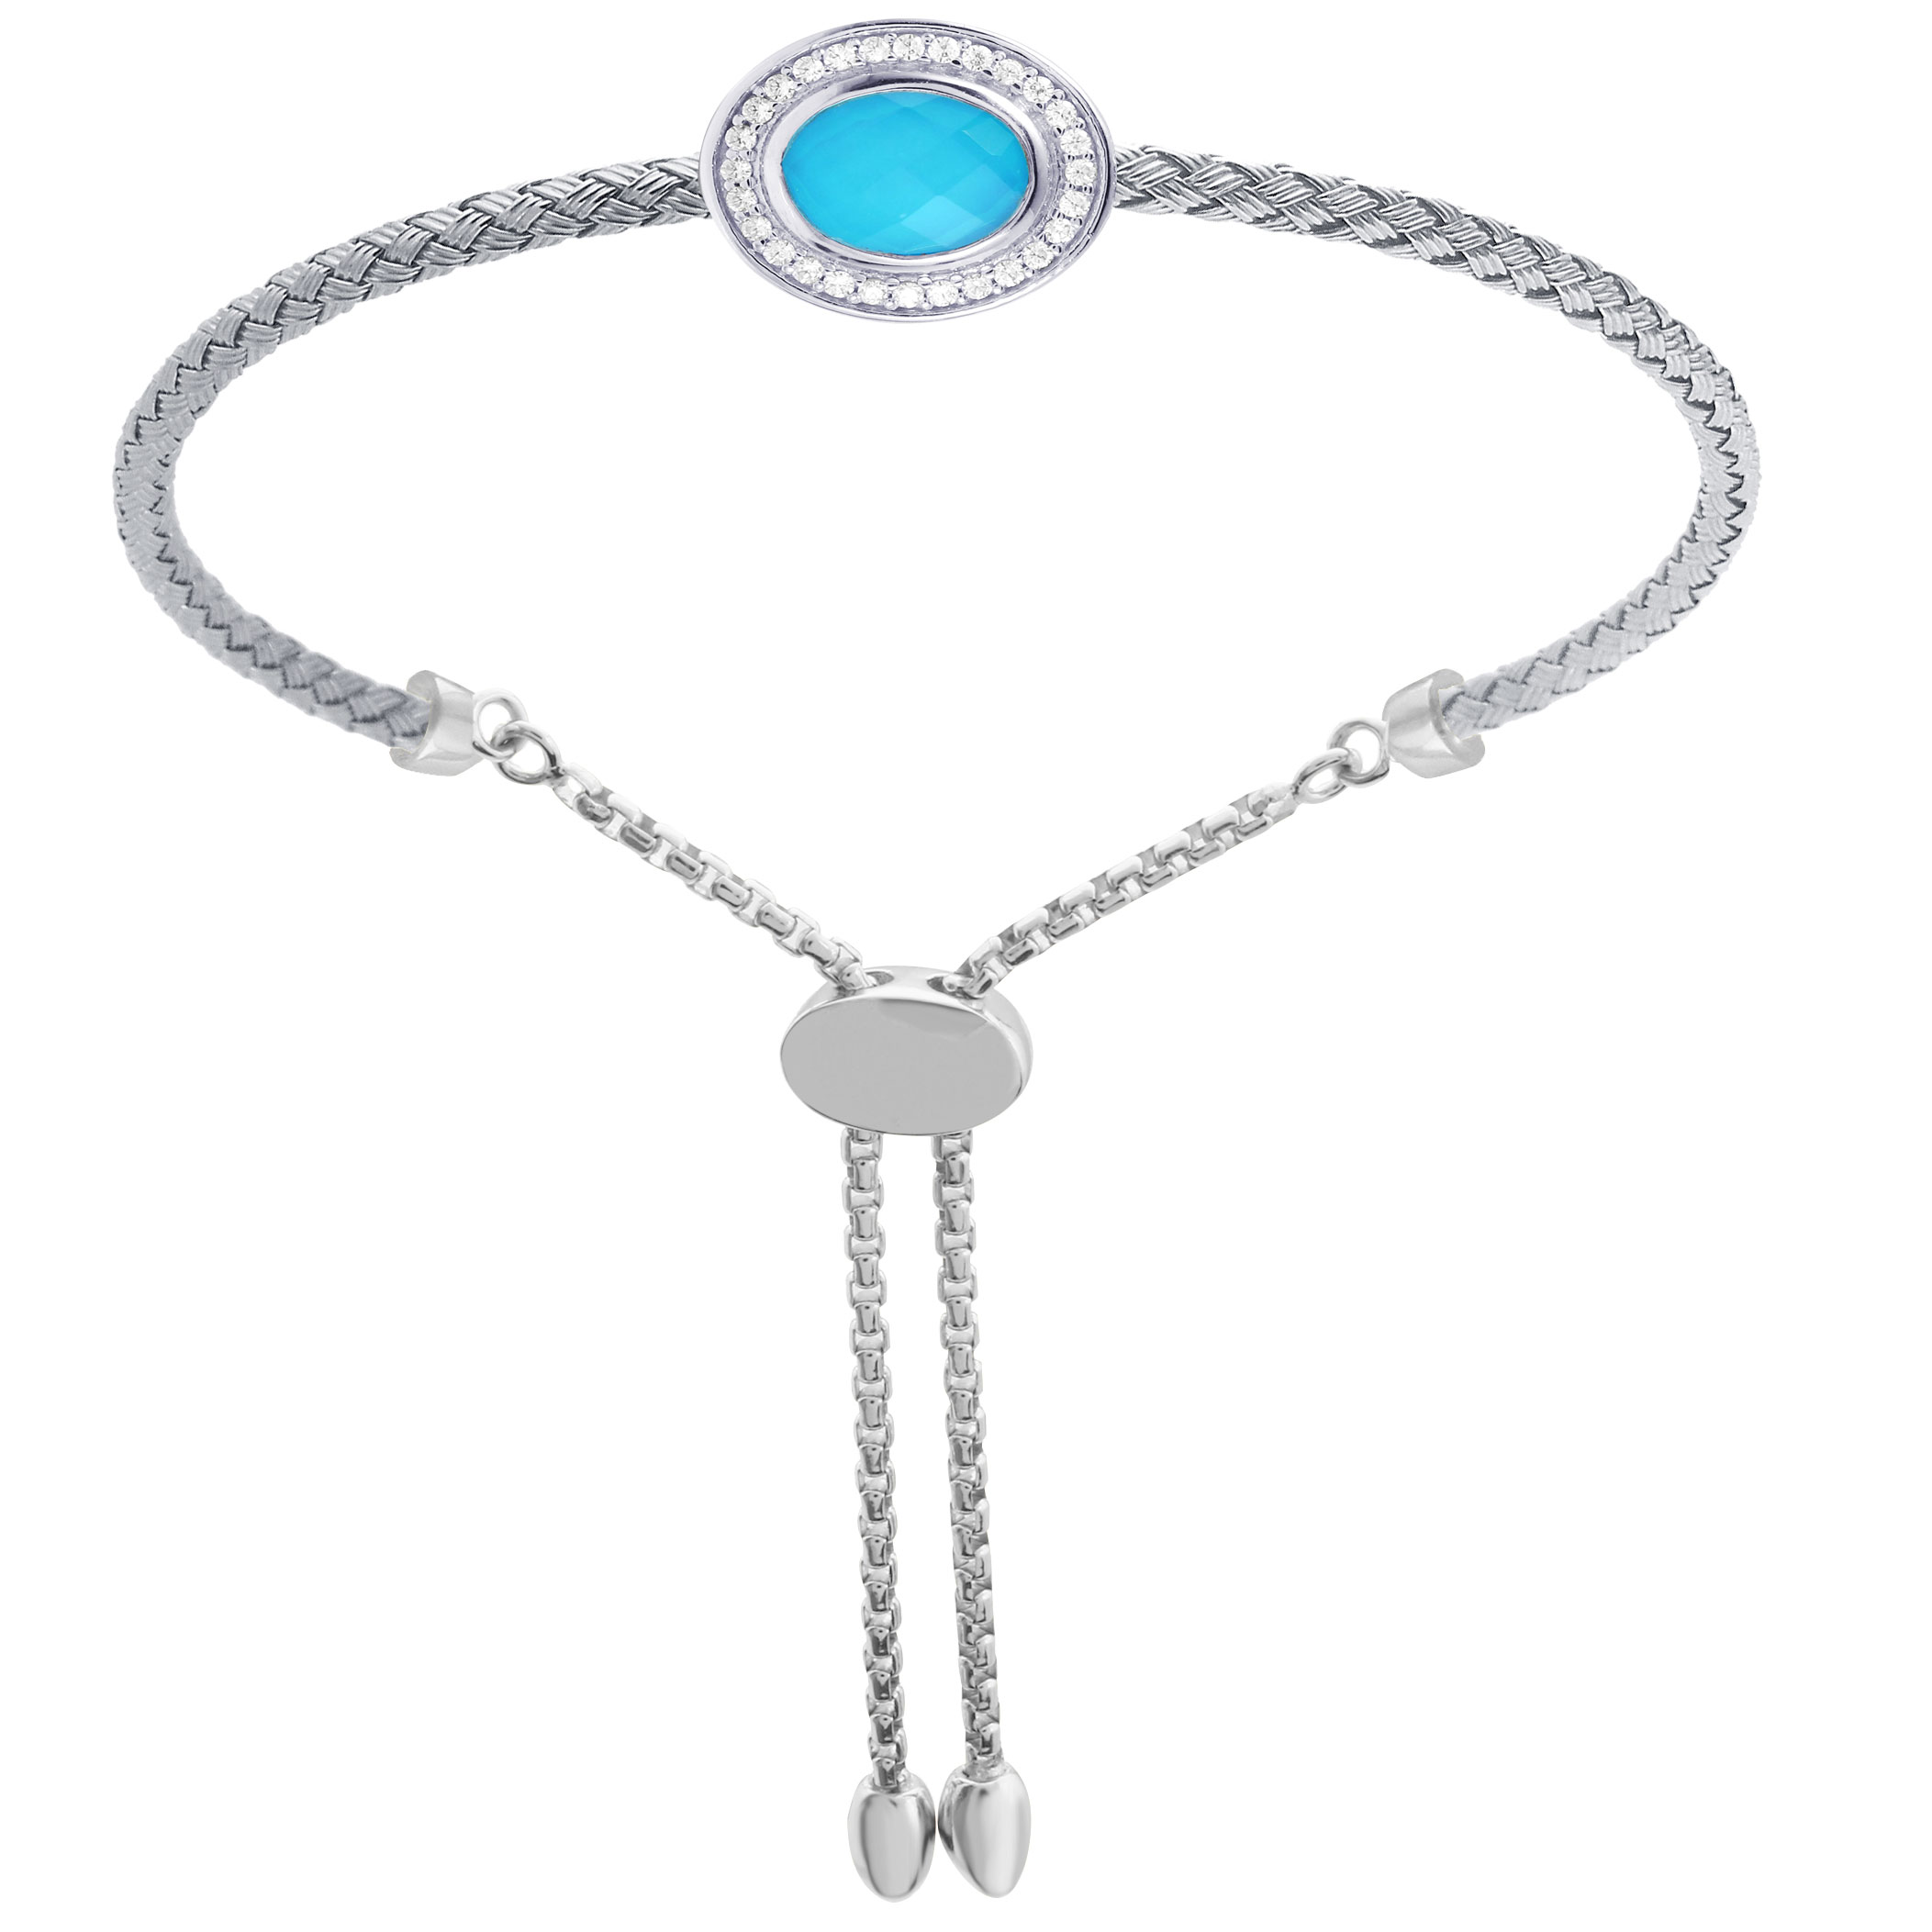 CHARLES GARNIER - Sterling Silver, Turquoise and CZ Bracelet